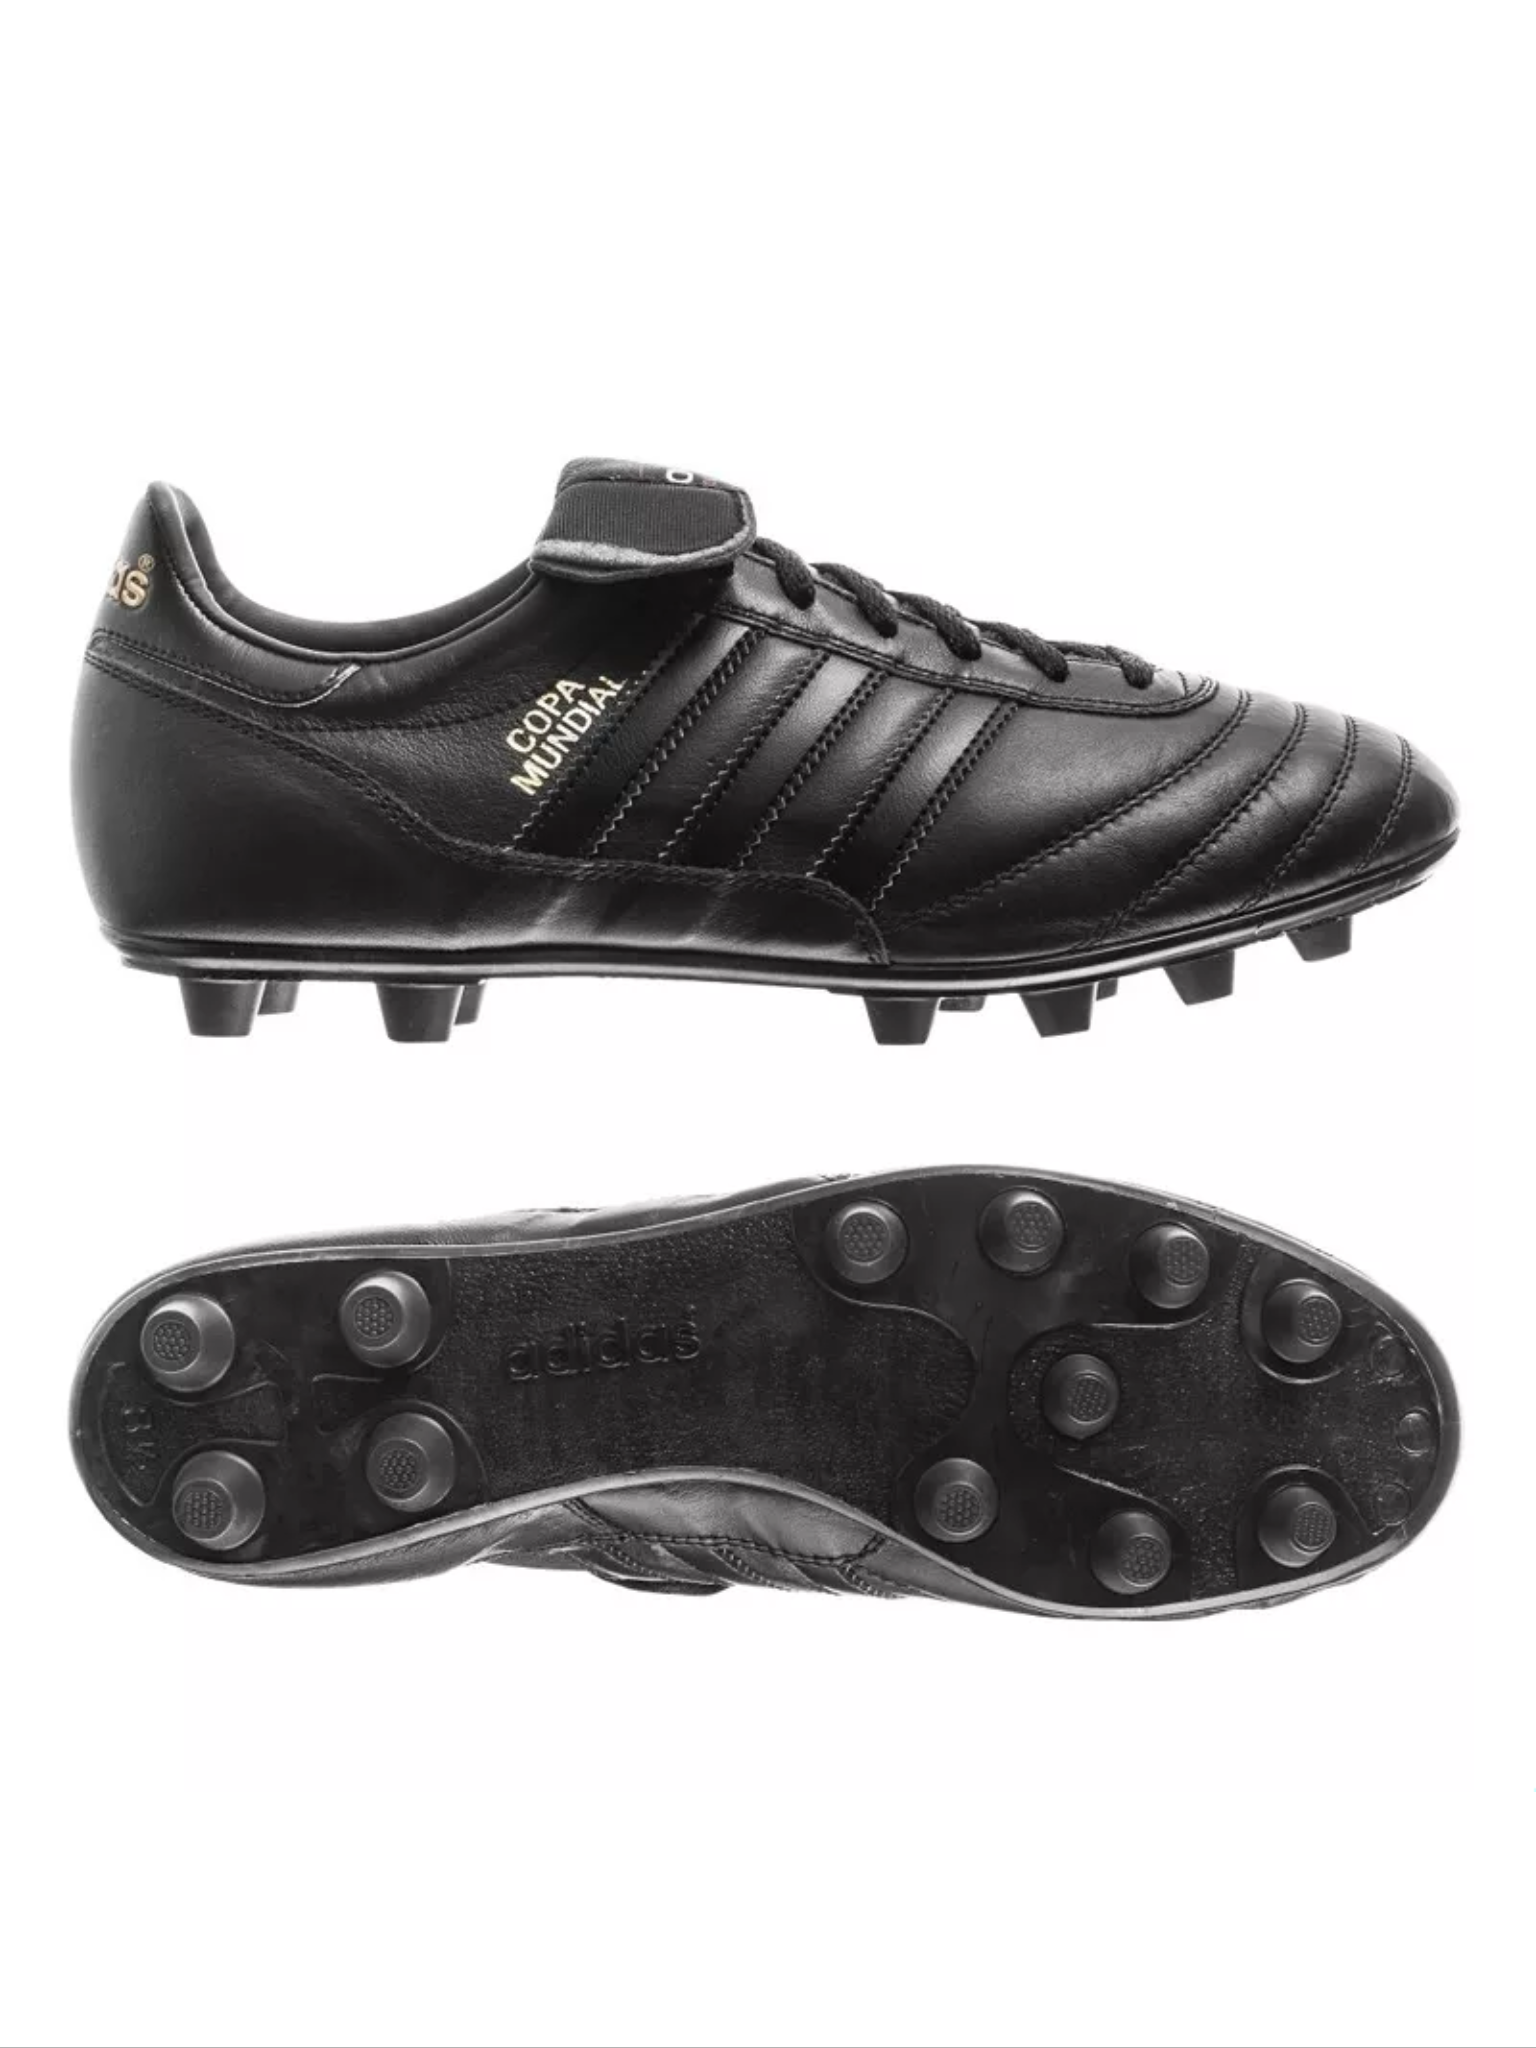 best sneakers 7b2e8 634d2 Adidas Copa Mundial in black on black. Wear like iron and feel like  butter... Adidas Copa Mundial Blackout Edition